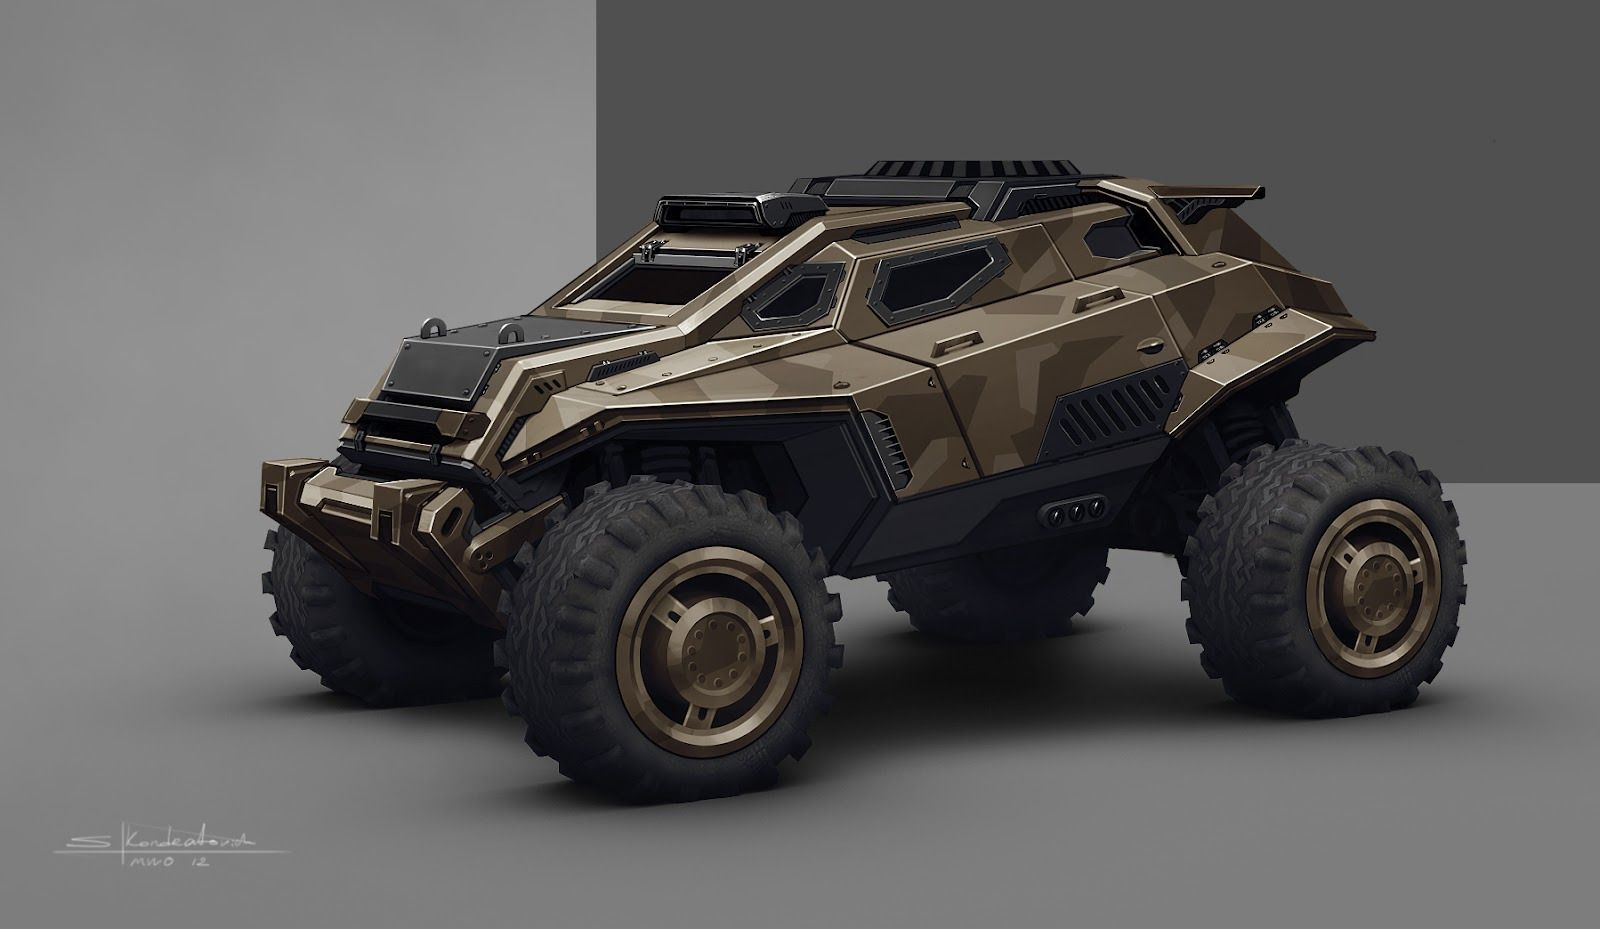 Best 25+ Army vehicles ideas on Pinterest | Military vehicles ...